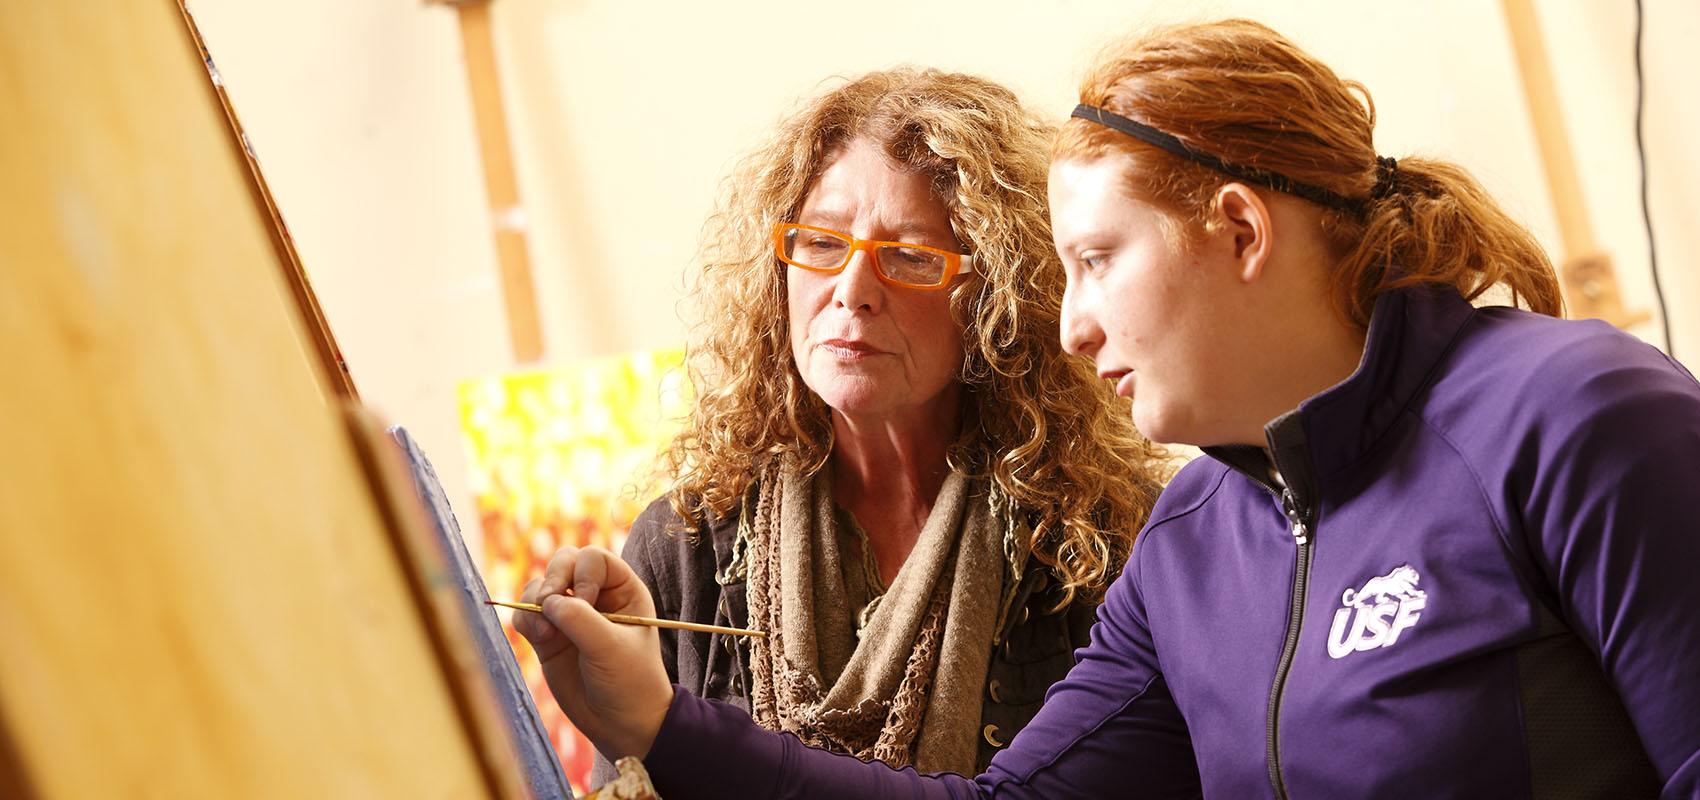 Professor Ceca Cooper helping a student with a painting.